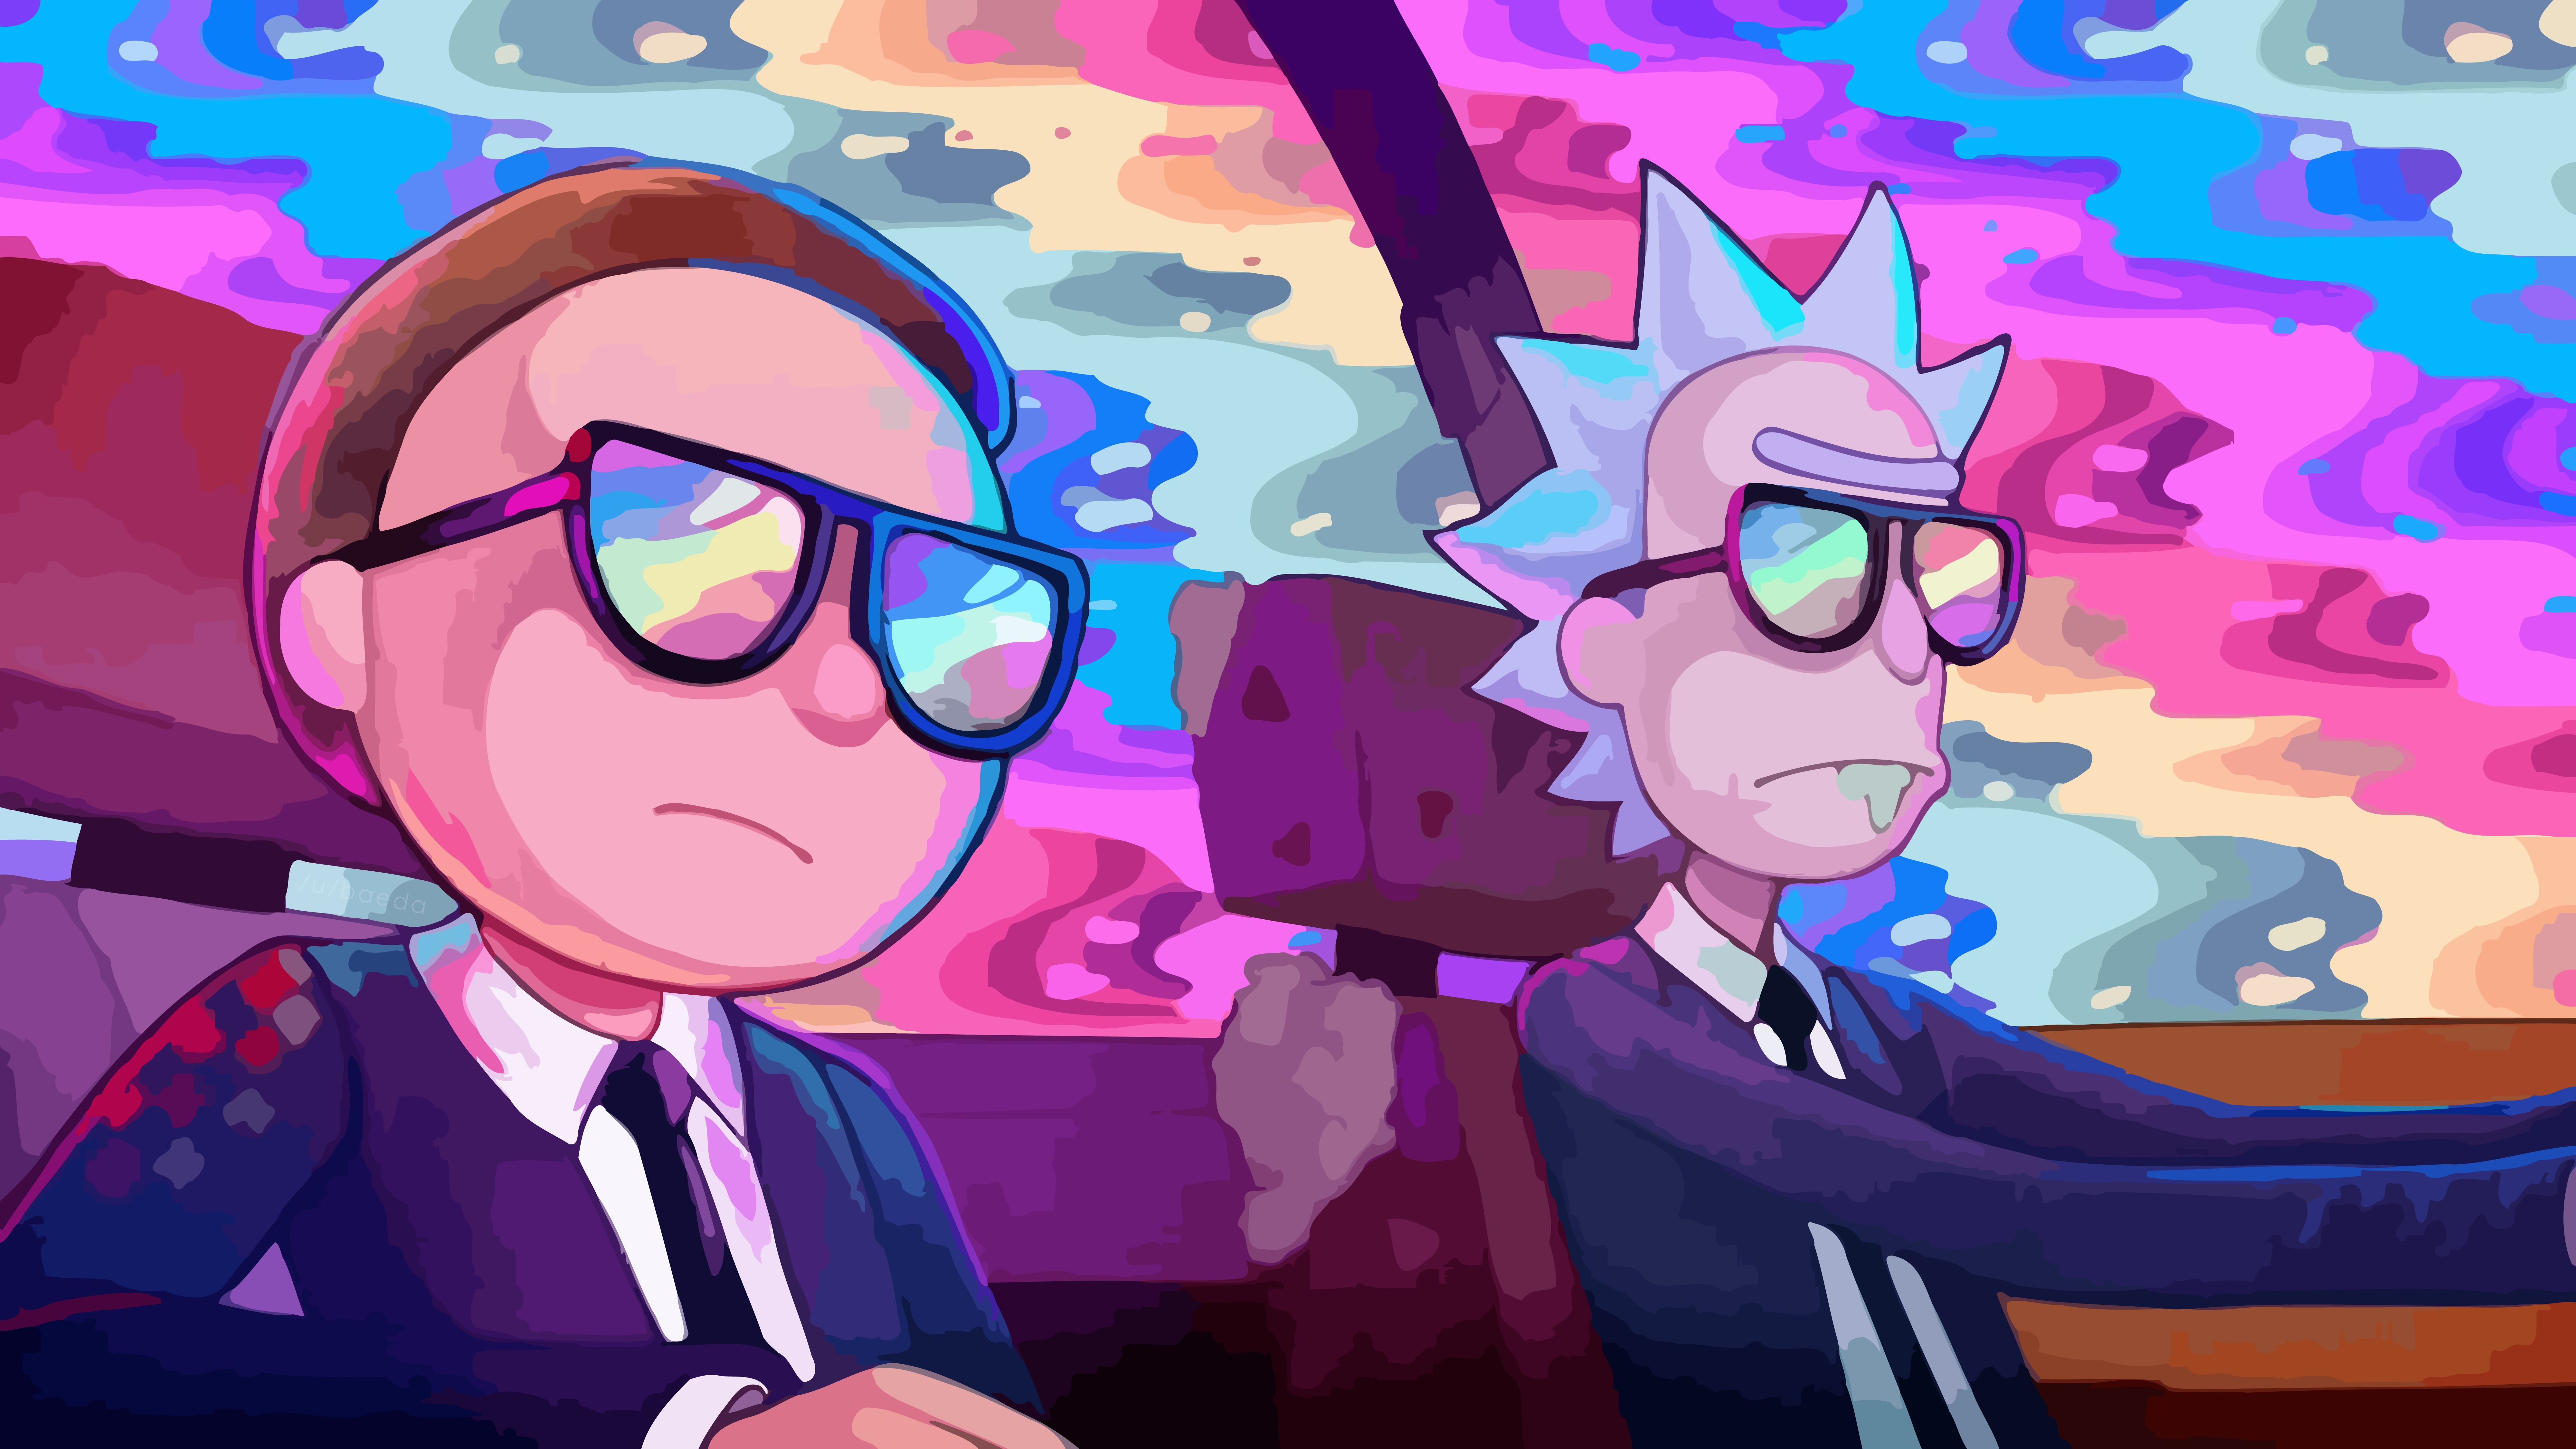 Rick and Morty Laptop Wallpapers - Top Free Rick and Morty Laptop